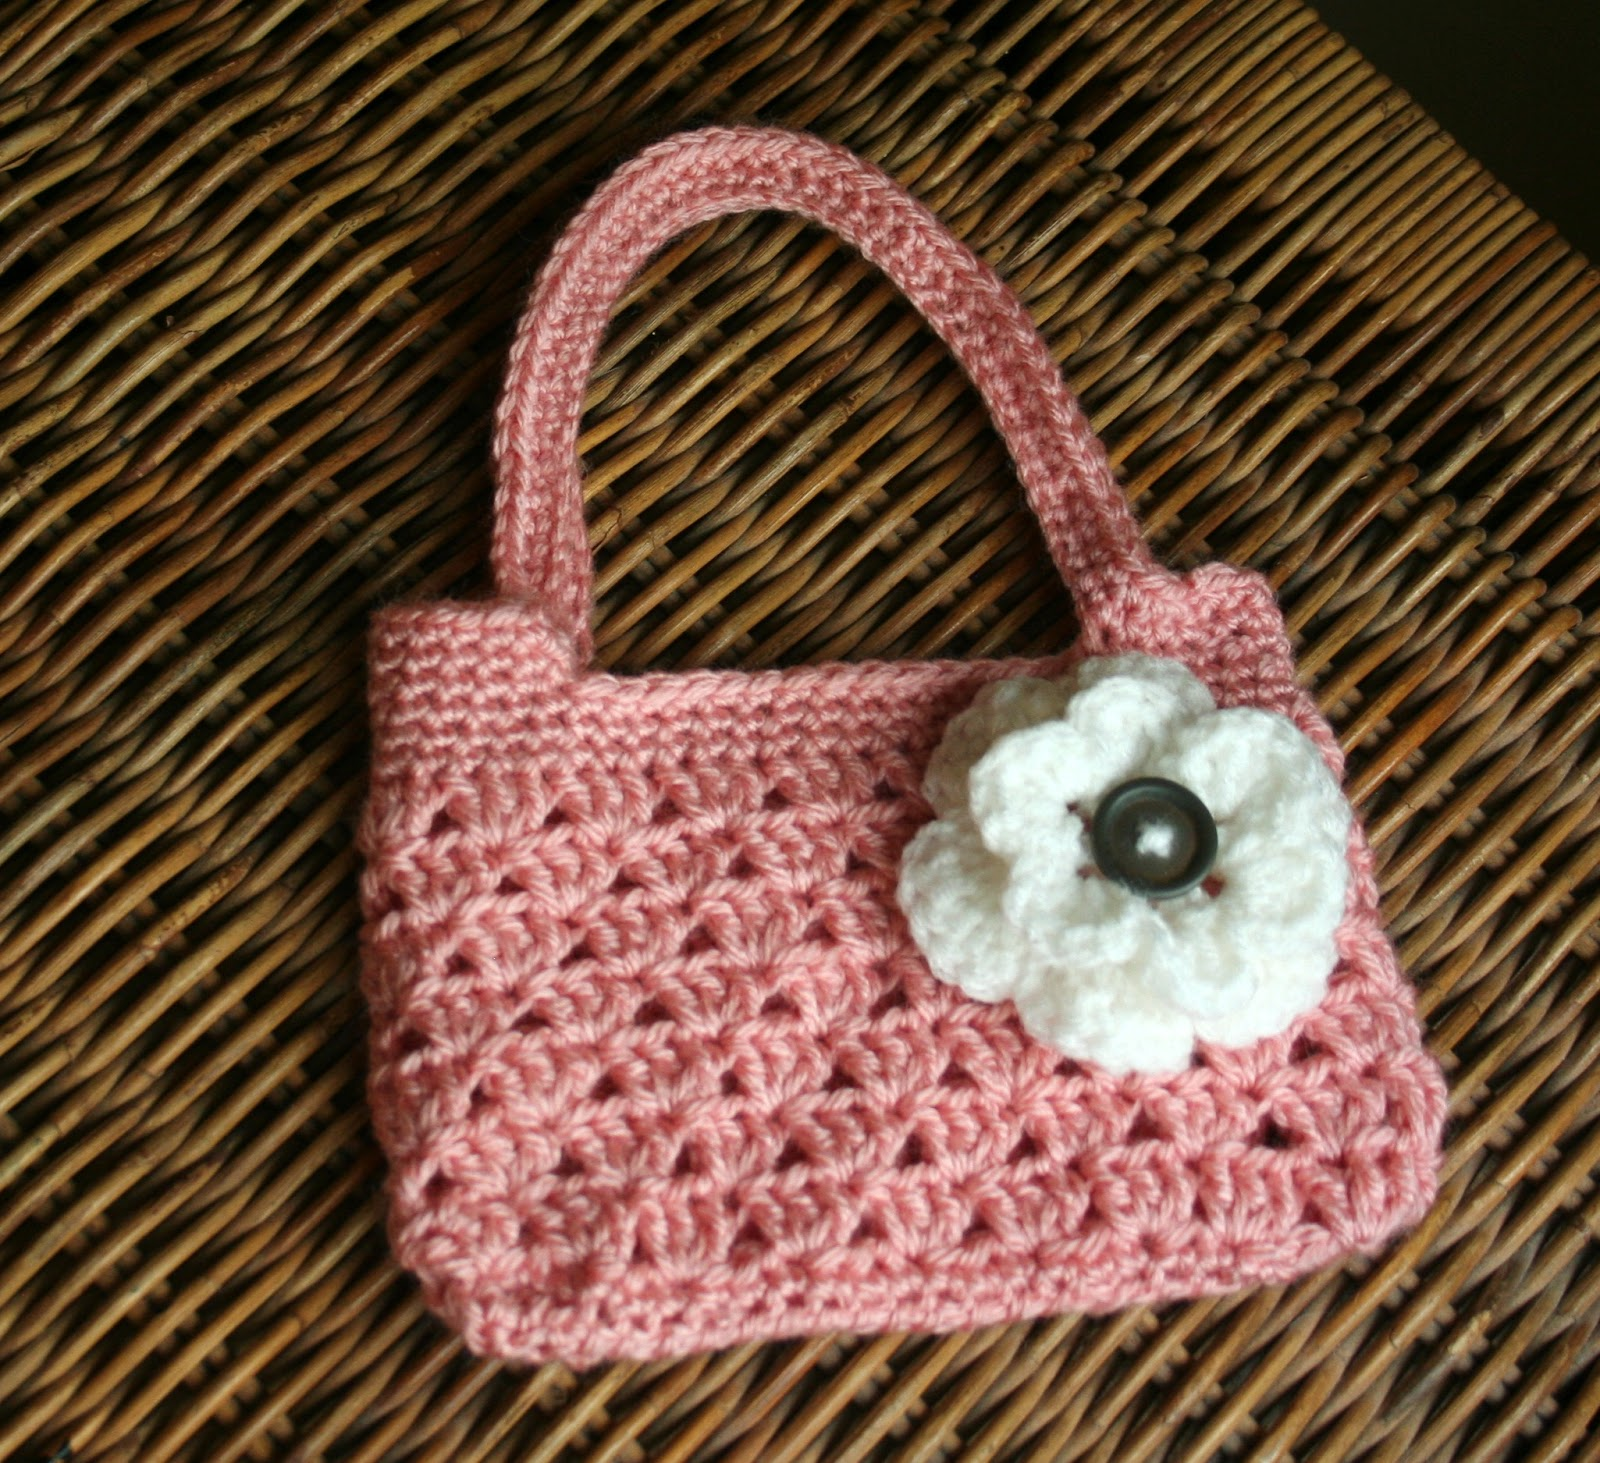 Crochet Purse Patterns Free : Tampa Bay Crochet: Free Easy Crochet Purse Pattern